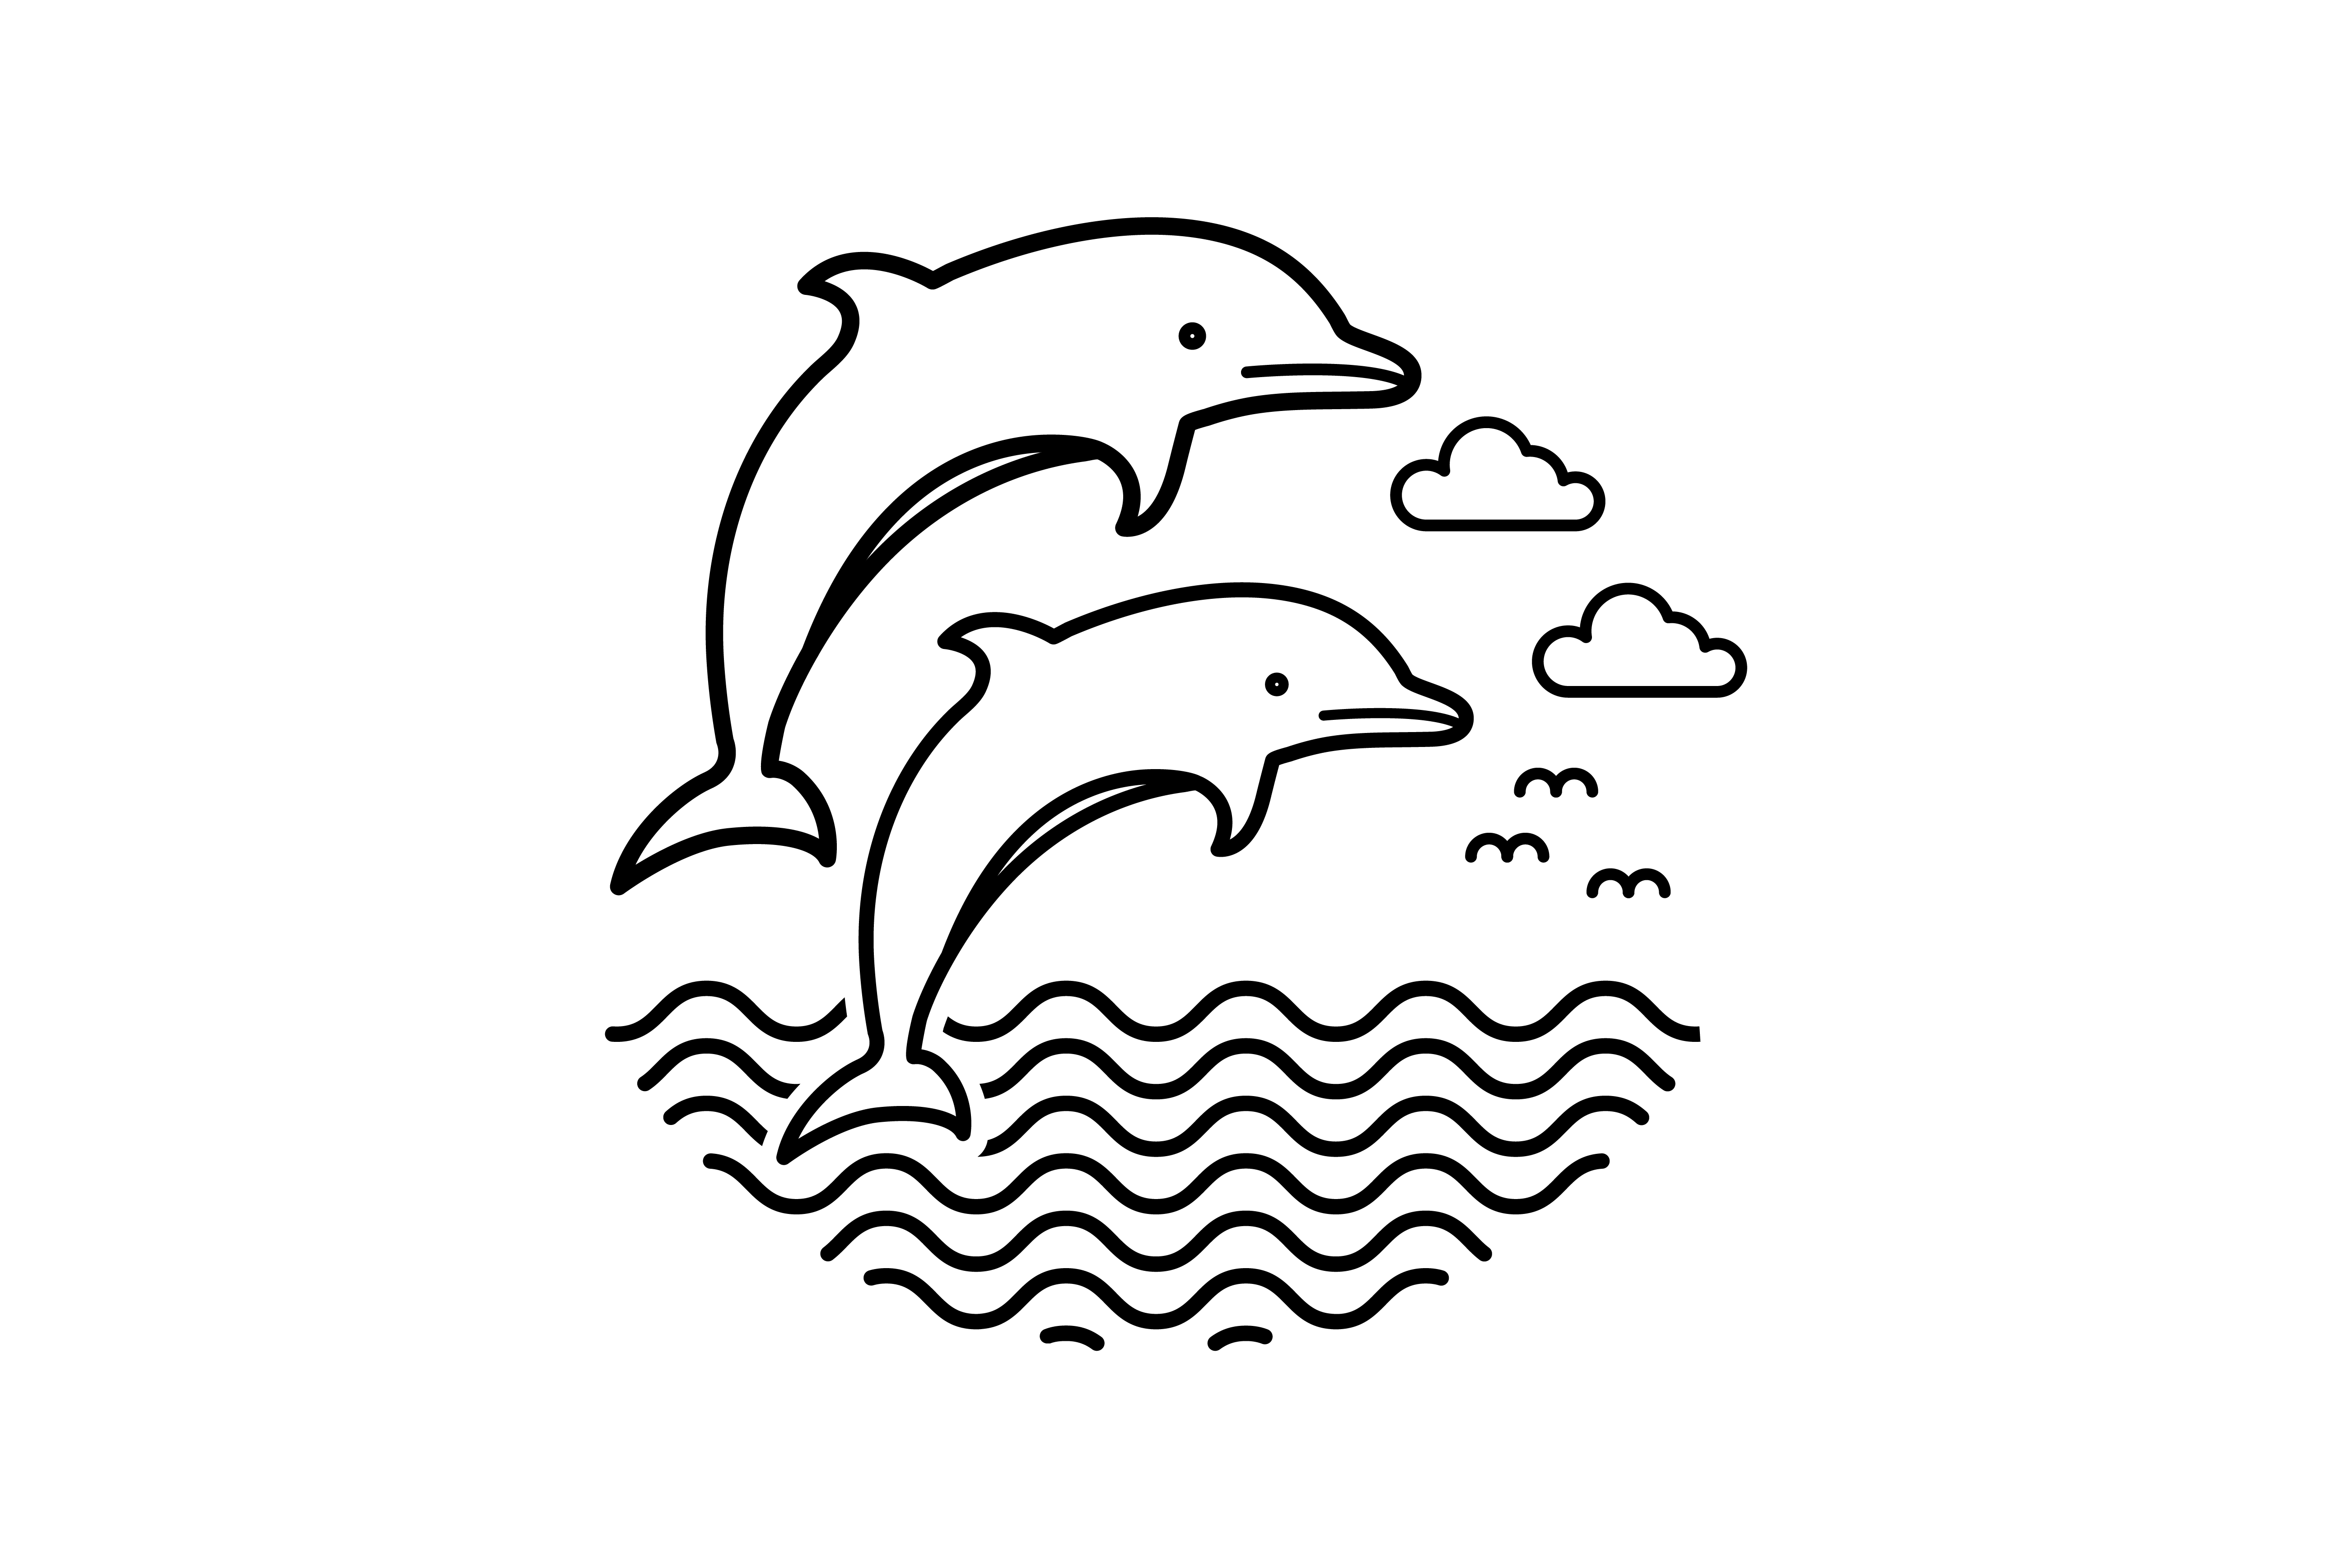 Download Free Dolphin Design Vector Graphic By Sabavector Creative Fabrica for Cricut Explore, Silhouette and other cutting machines.